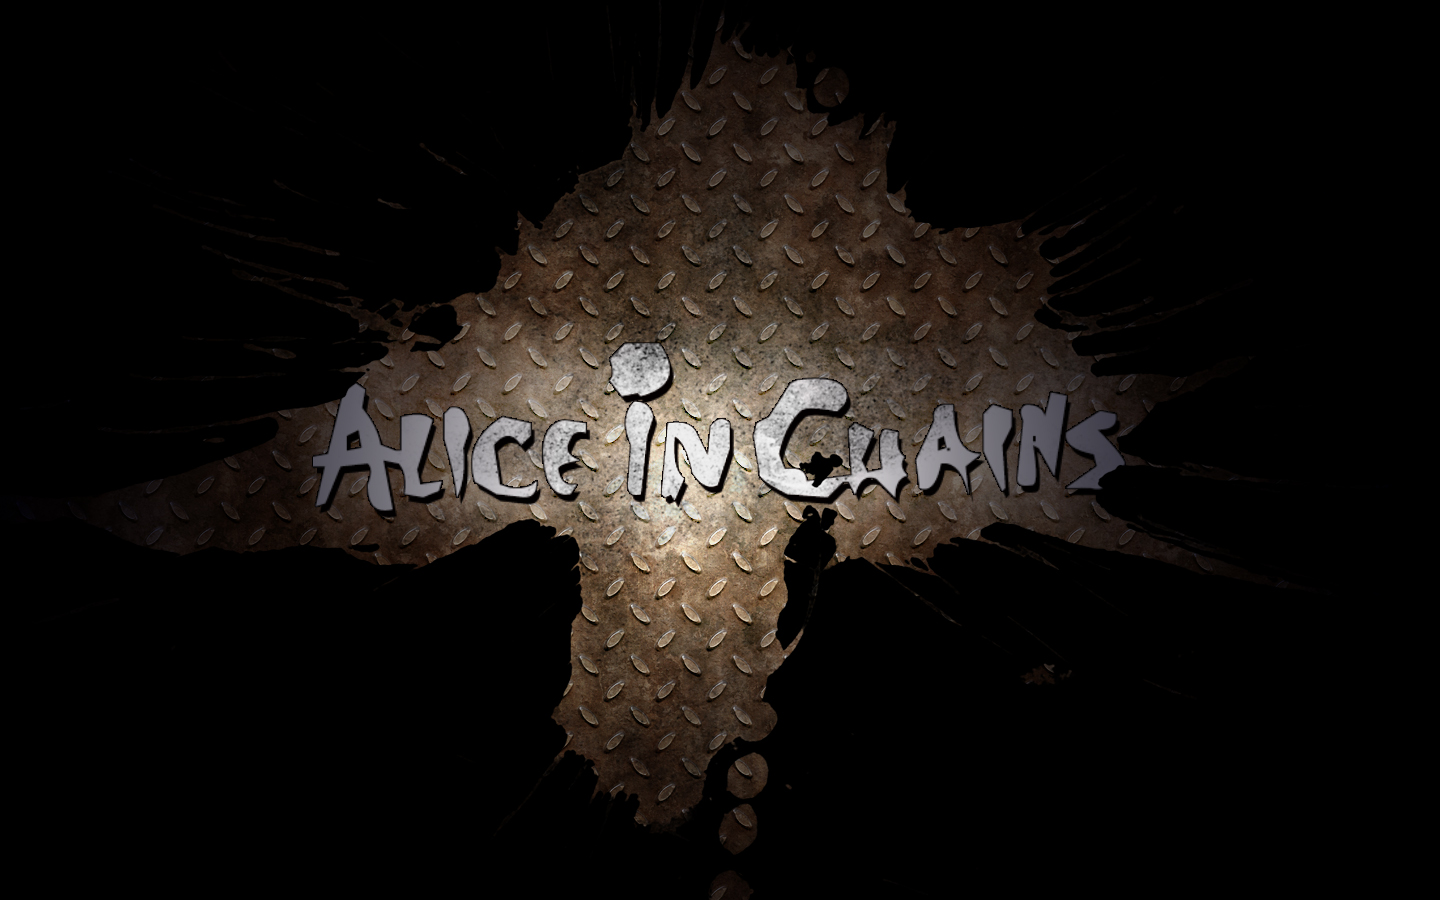 alice in chains by saccamano on deviantart